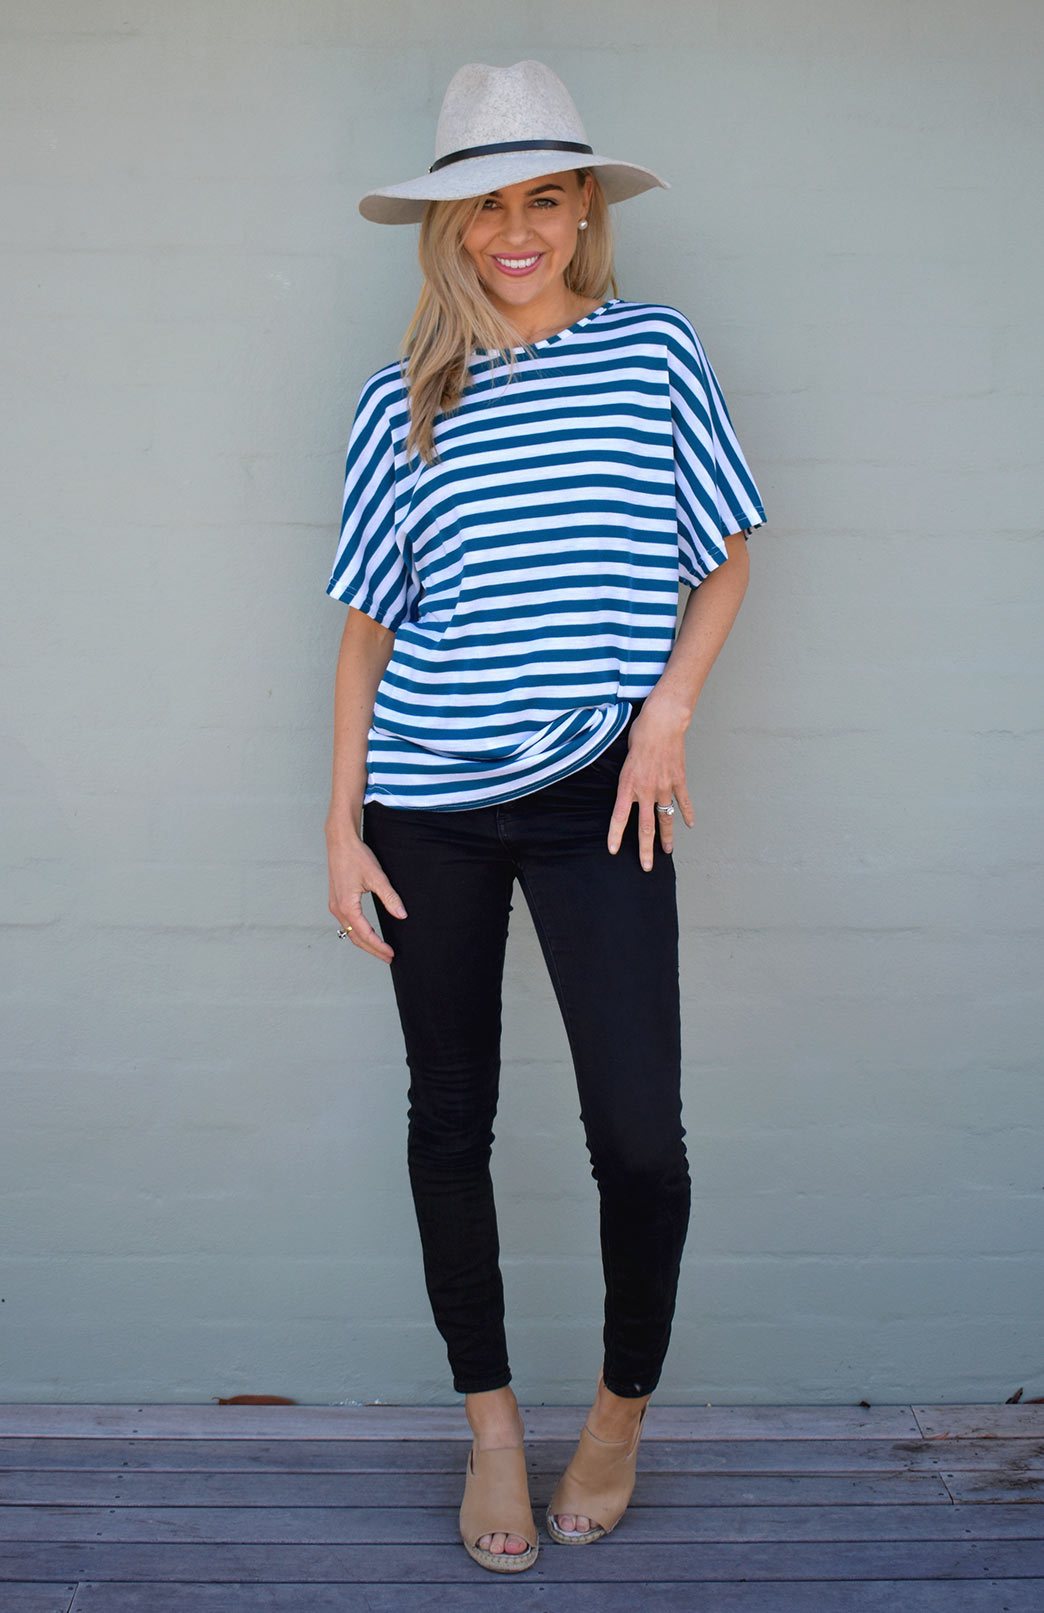 Loose T-Shirt - Women's Loose Wool Teal and Ivory Striped Summer Top - Smitten Merino Tasmania Australia